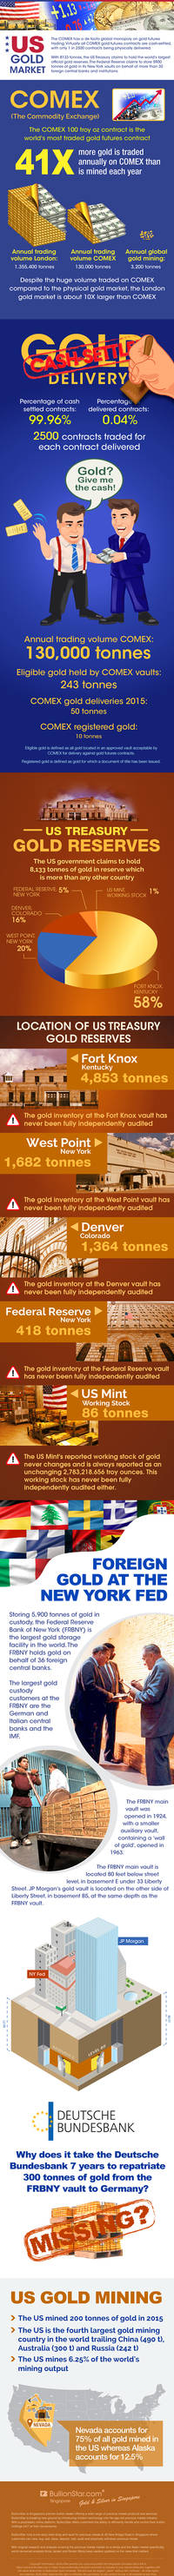 us gold market infographic